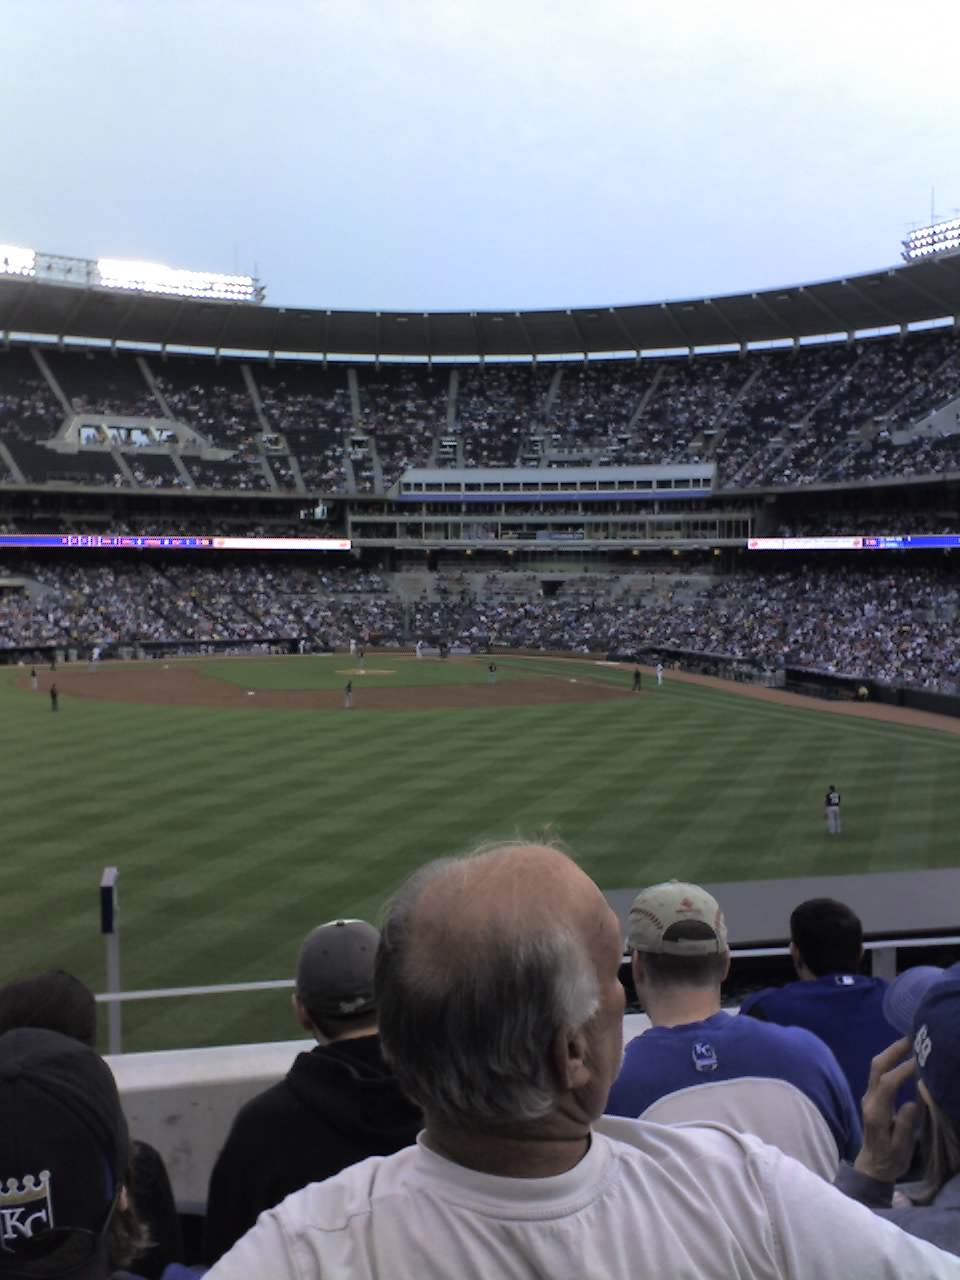 View from the $7 seats